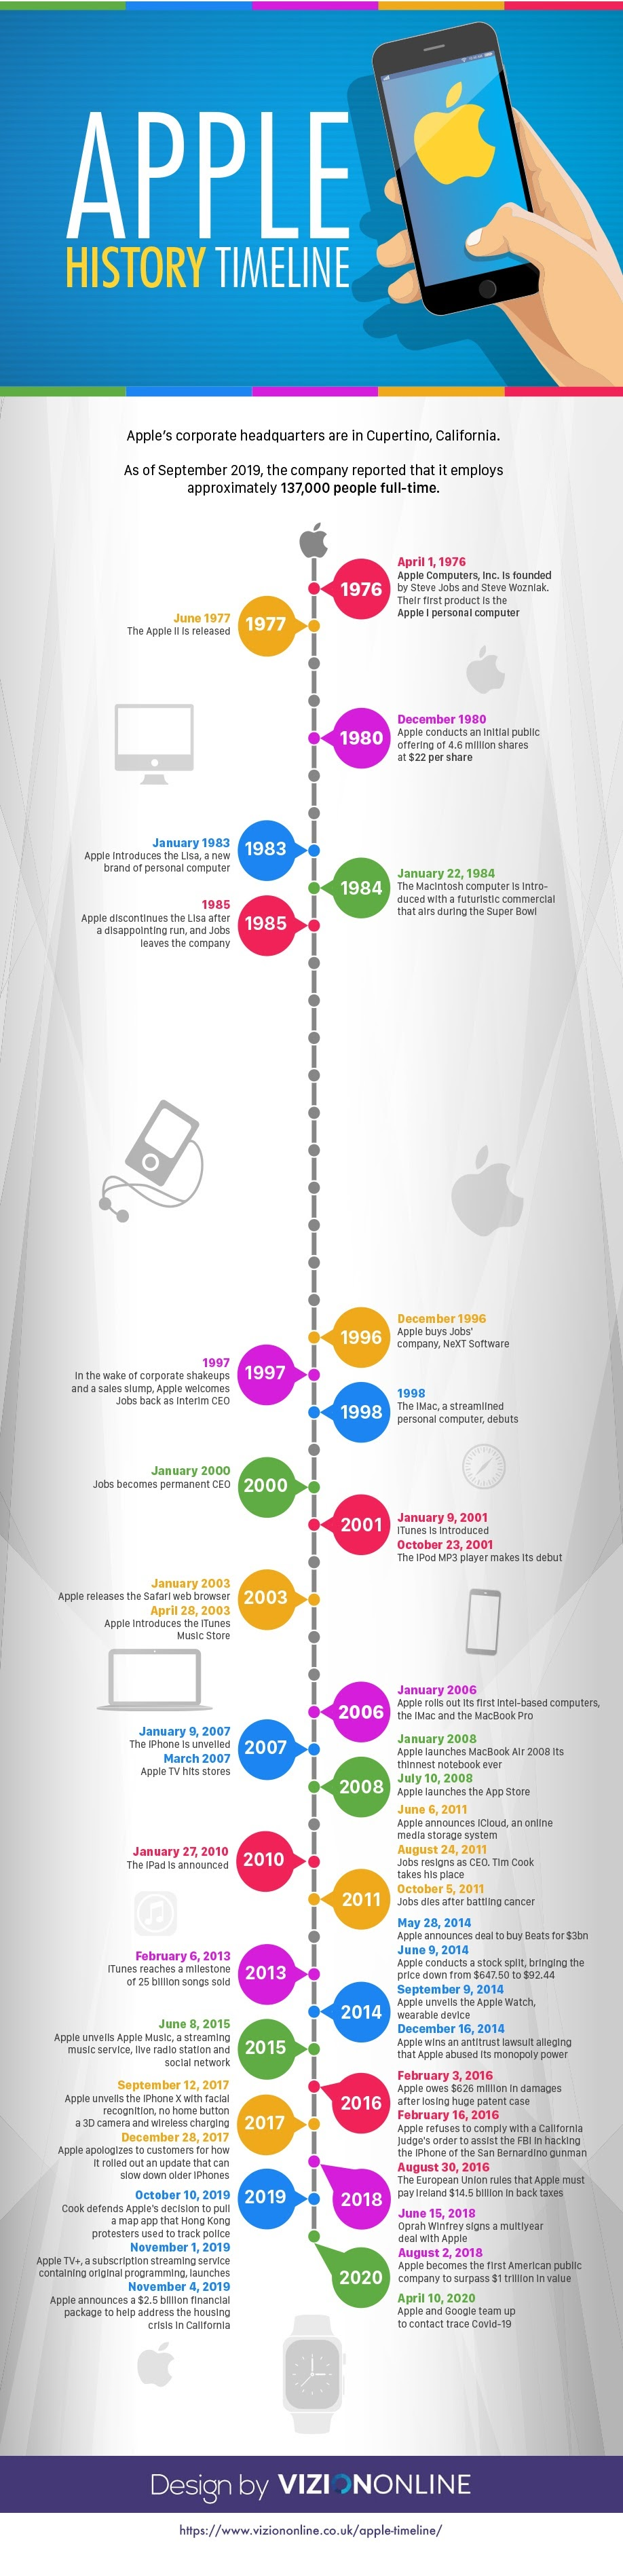 Timeline of Apple 's History #infographic #Apple #Mobile Devices #History